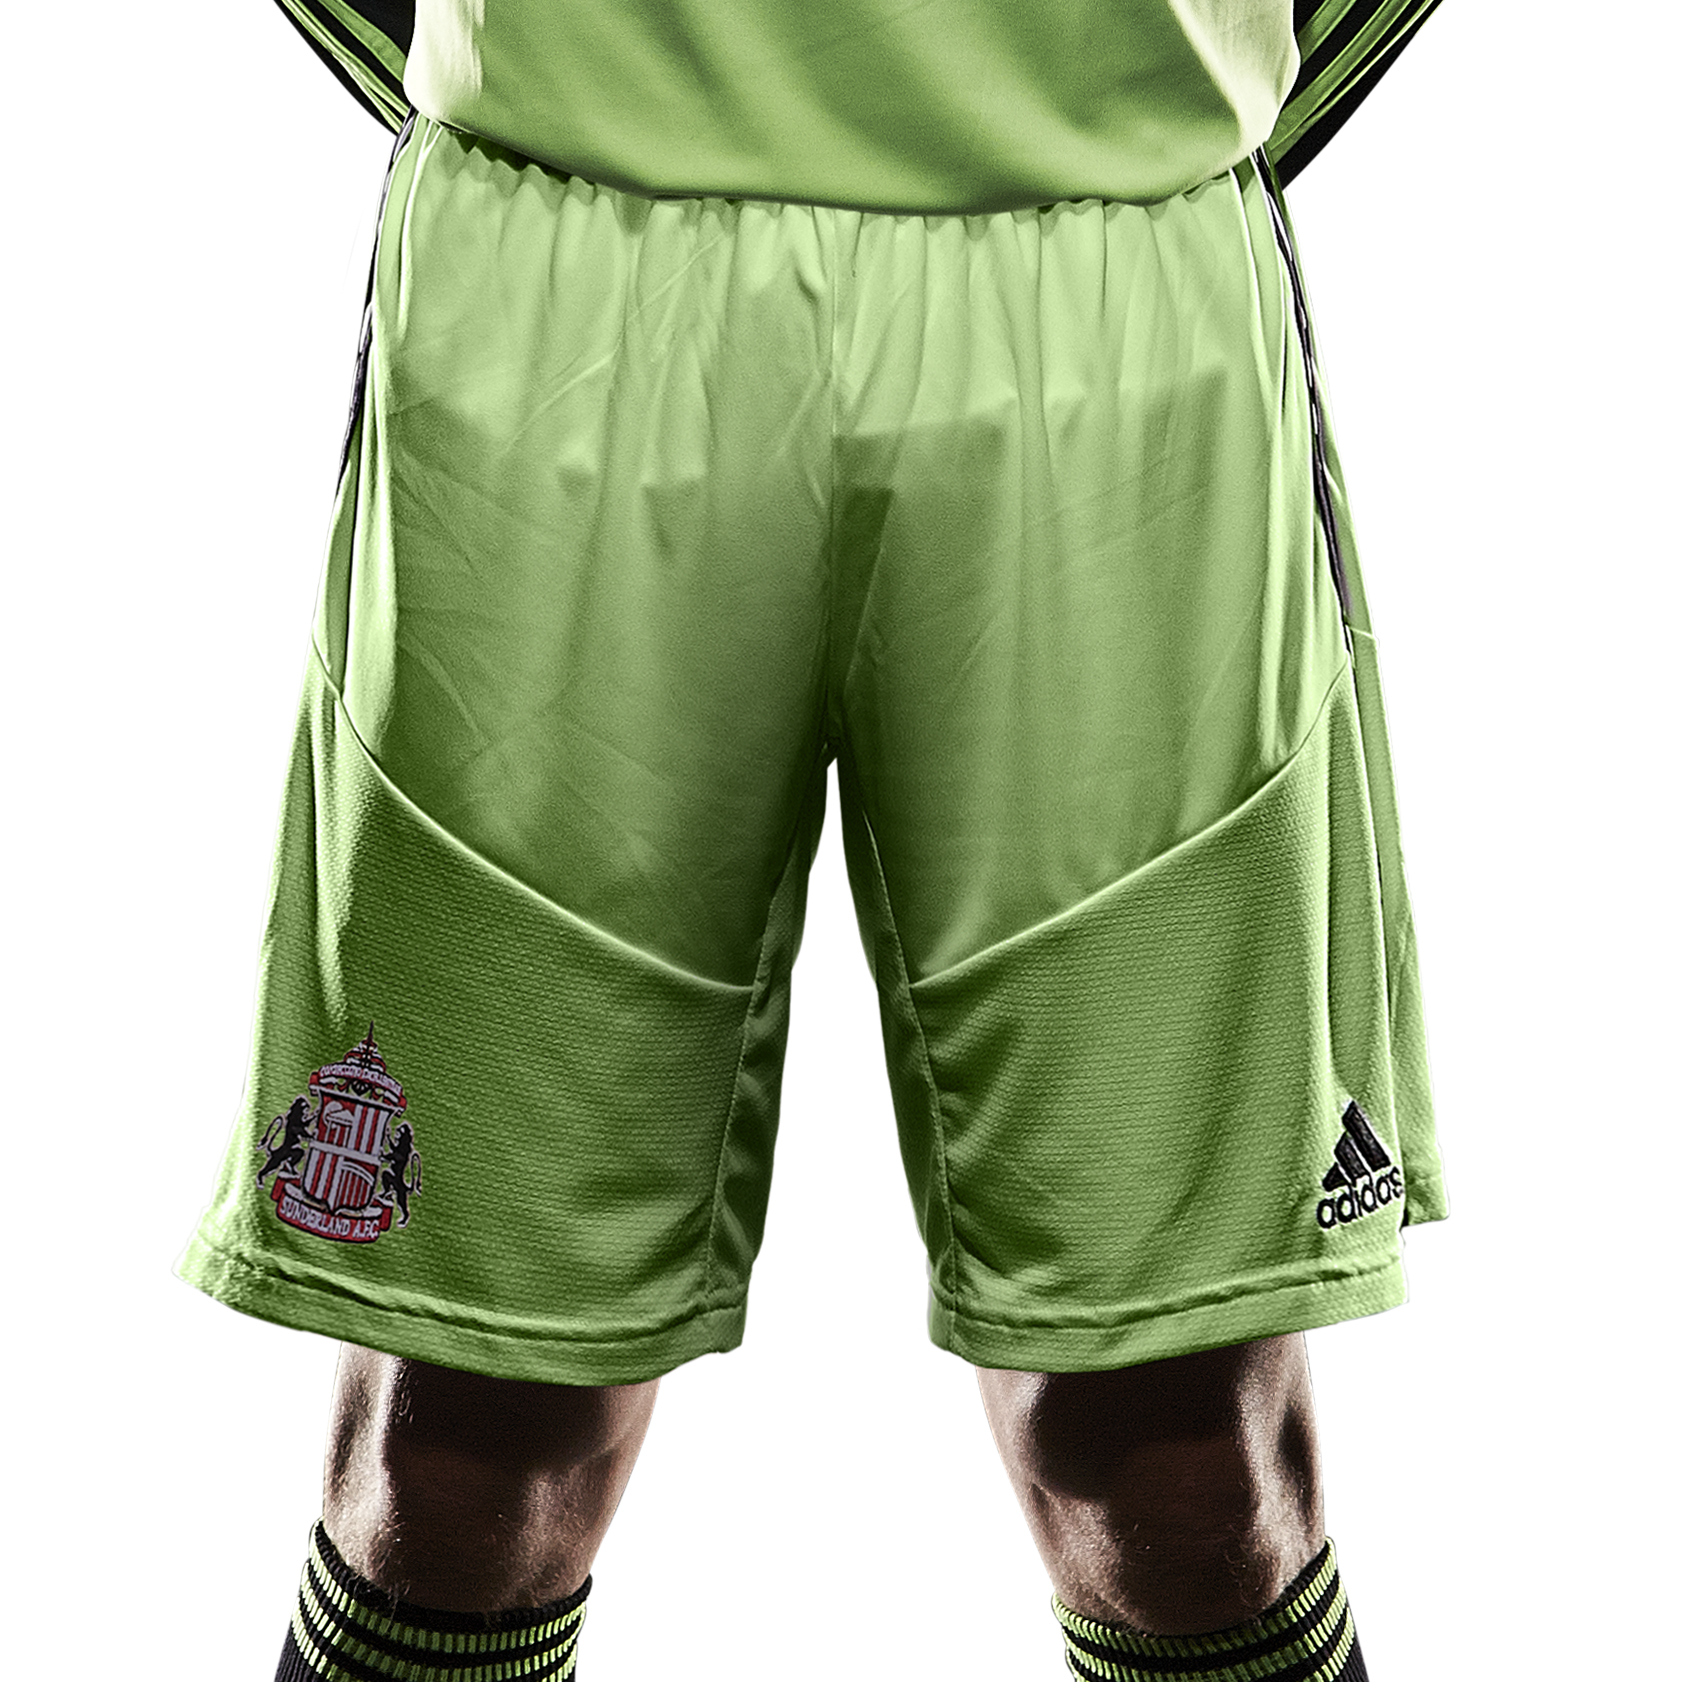 Sunderland Home Goalkeeper Short 2013/14 - Junior